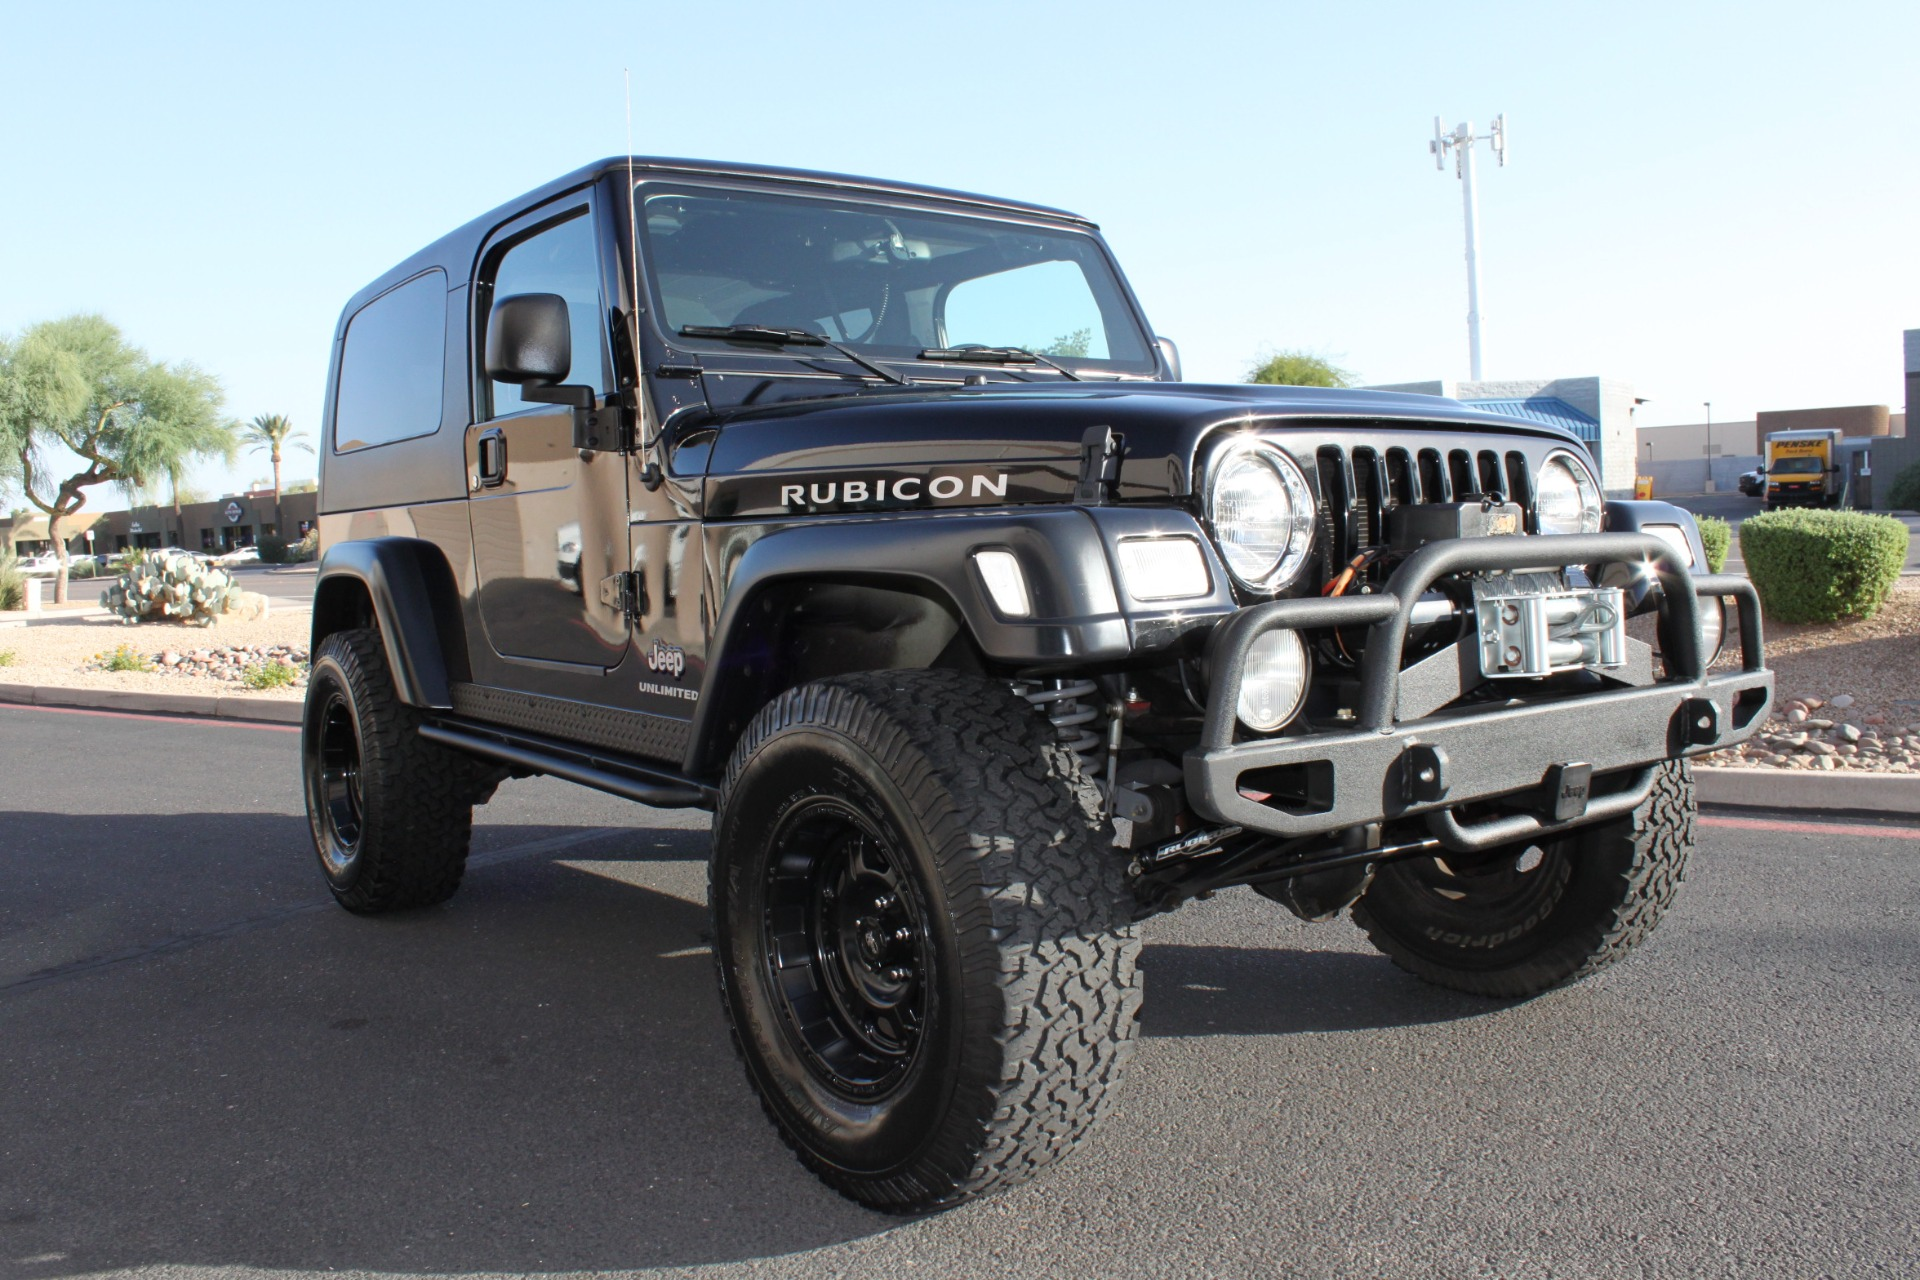 Used-2006-Jeep-Wrangler-Unlimited-Rubicon-LWB-Wrangler